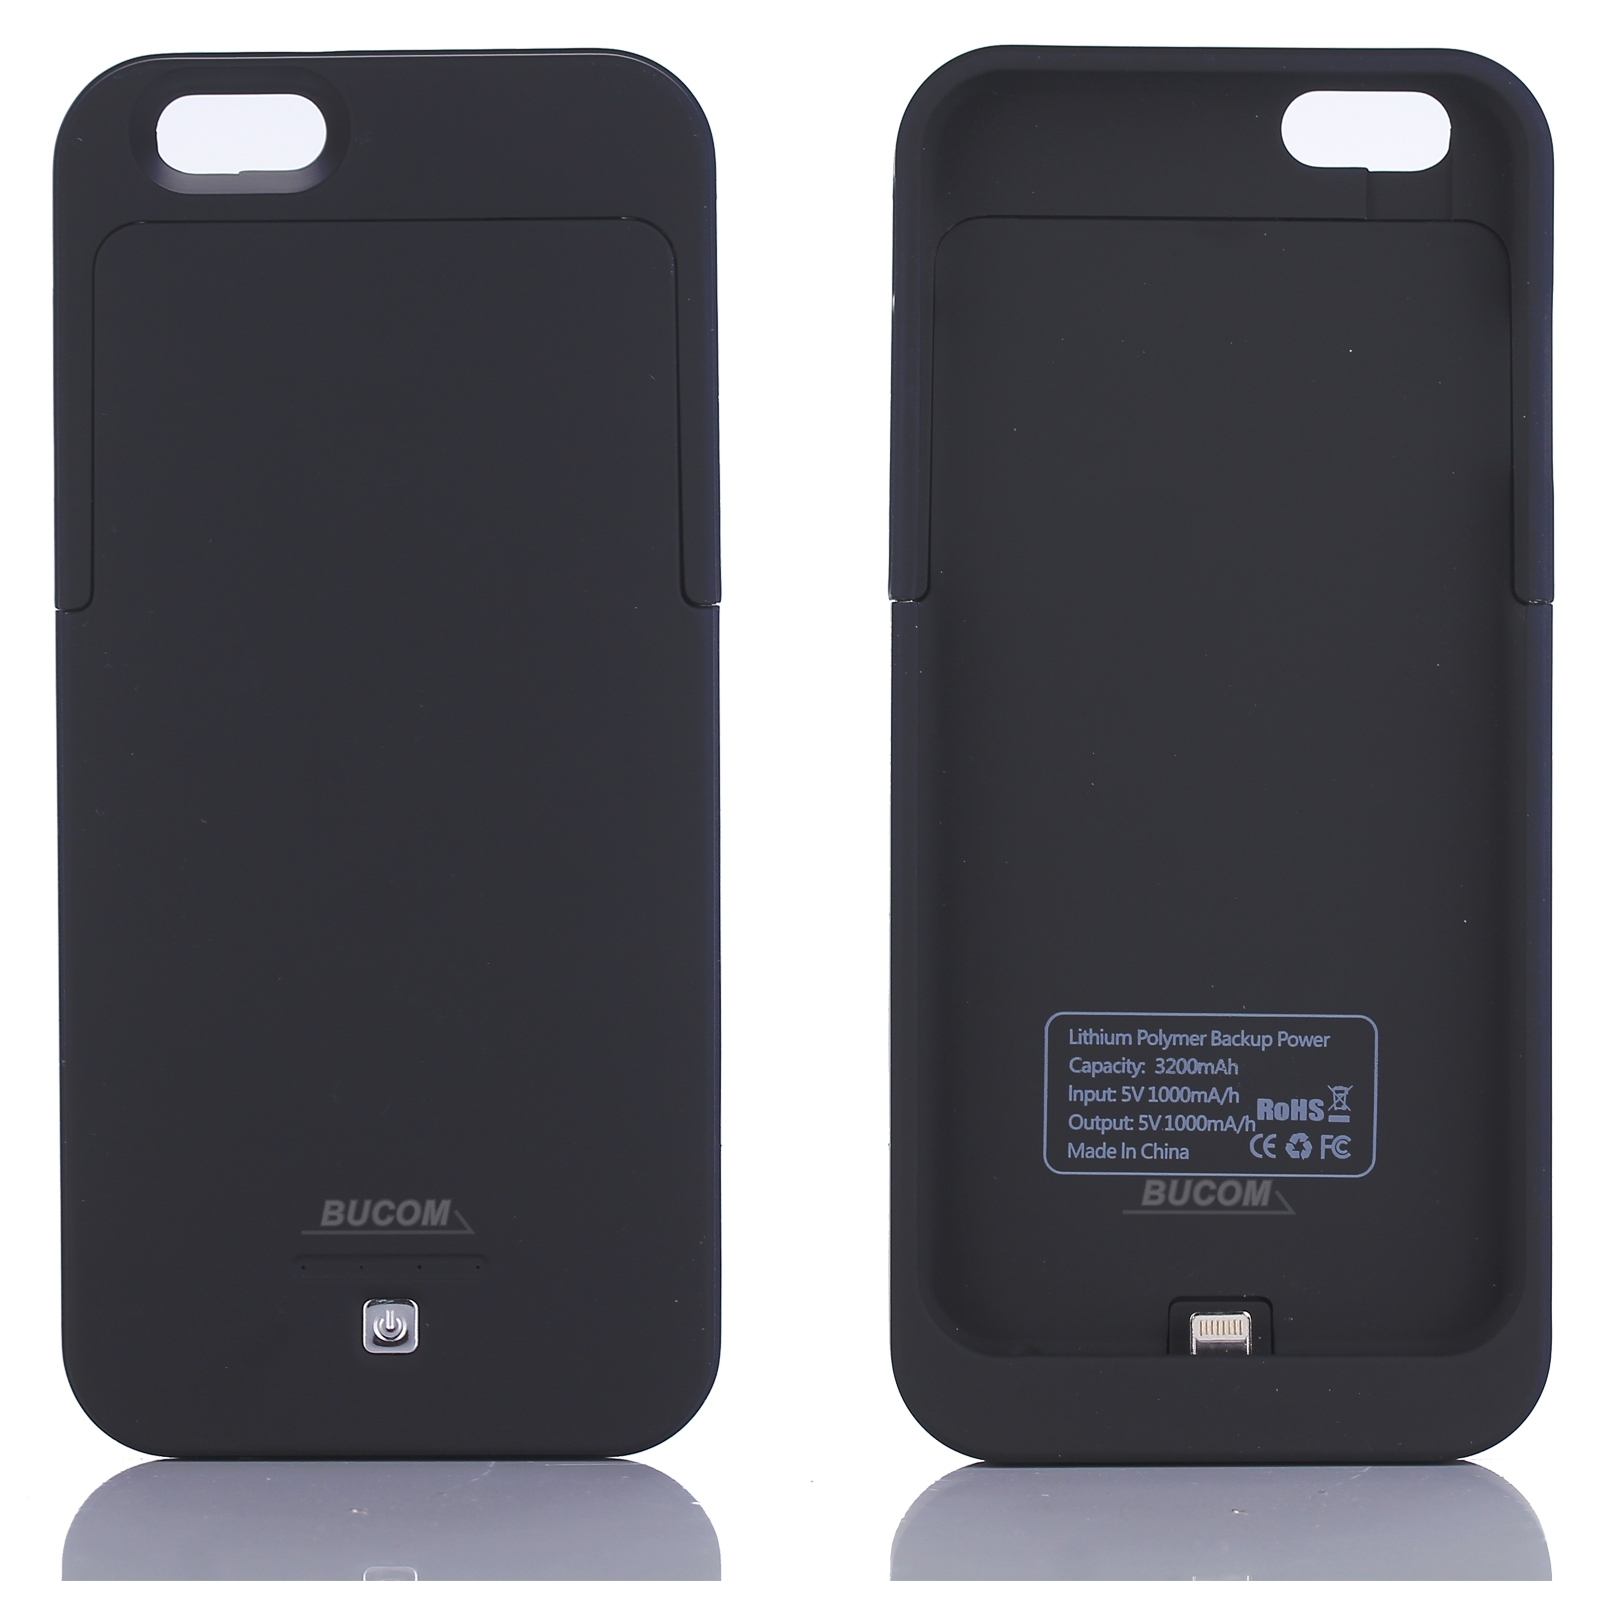 f r iphone 6 lade cover ladeschale notfall power case emergency charger 3200mah ebay. Black Bedroom Furniture Sets. Home Design Ideas